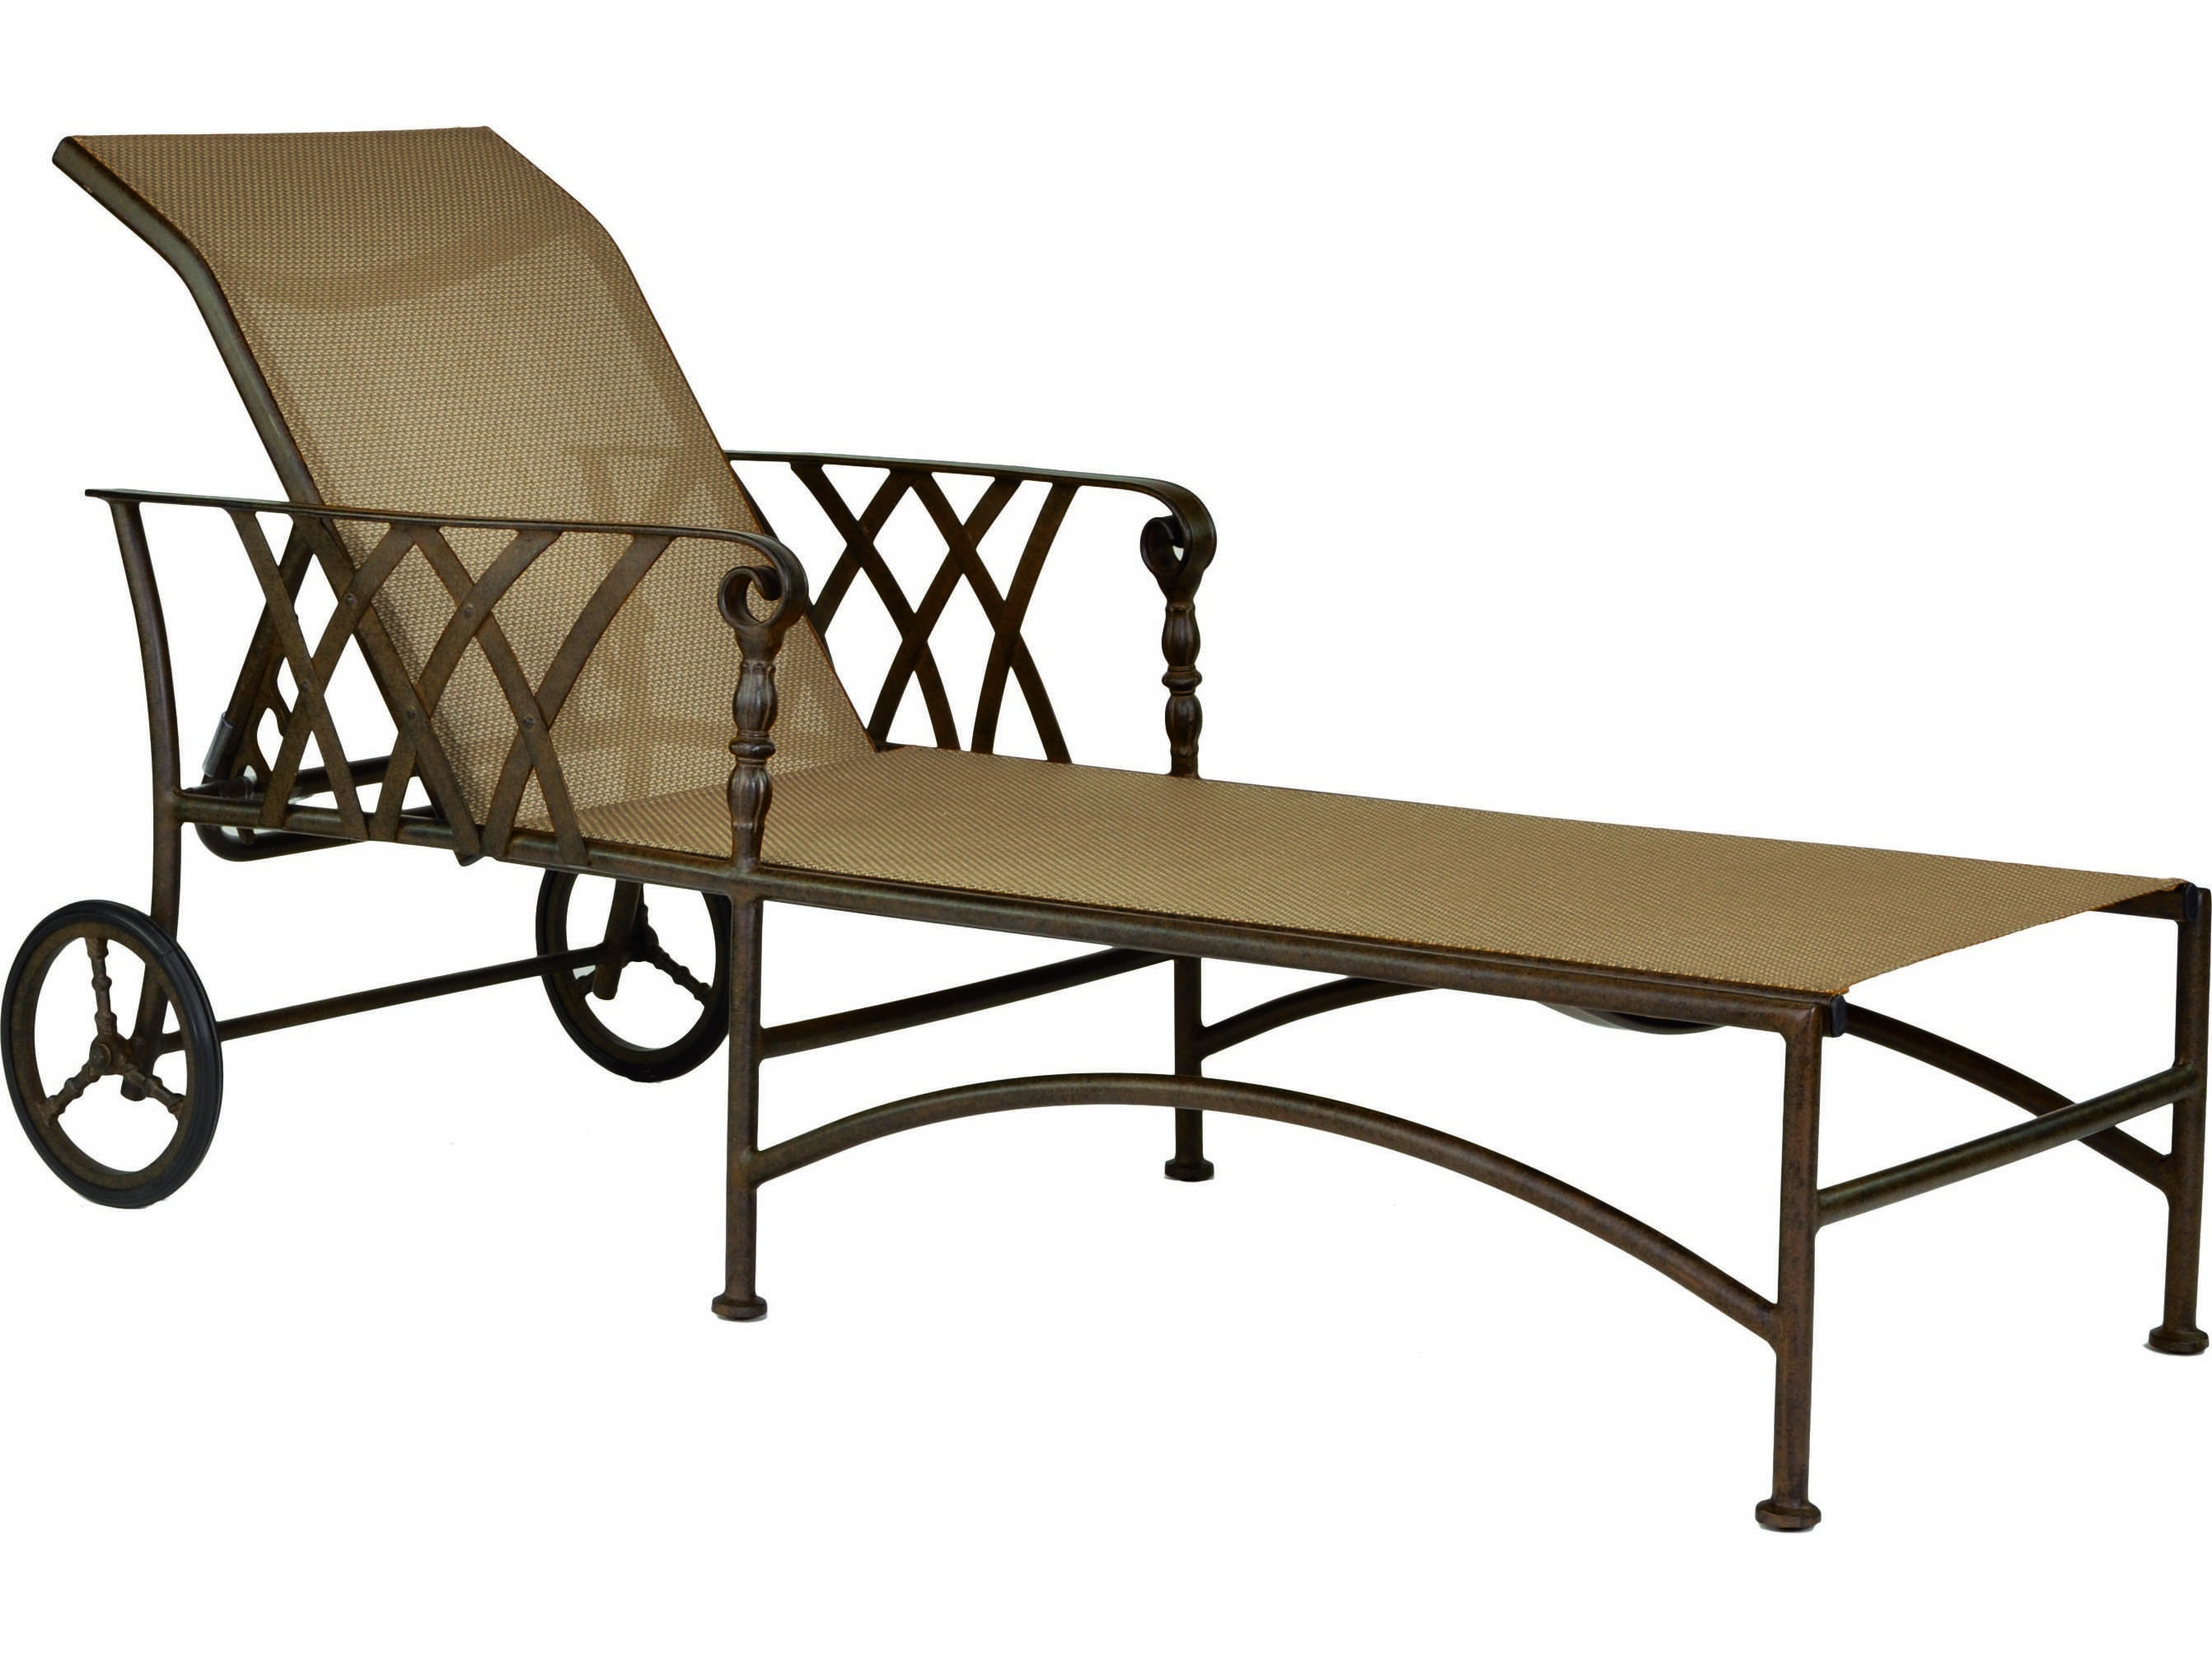 Castelle veranda sling cast aluminum adjustable chaise for Cast aluminum chaise lounge